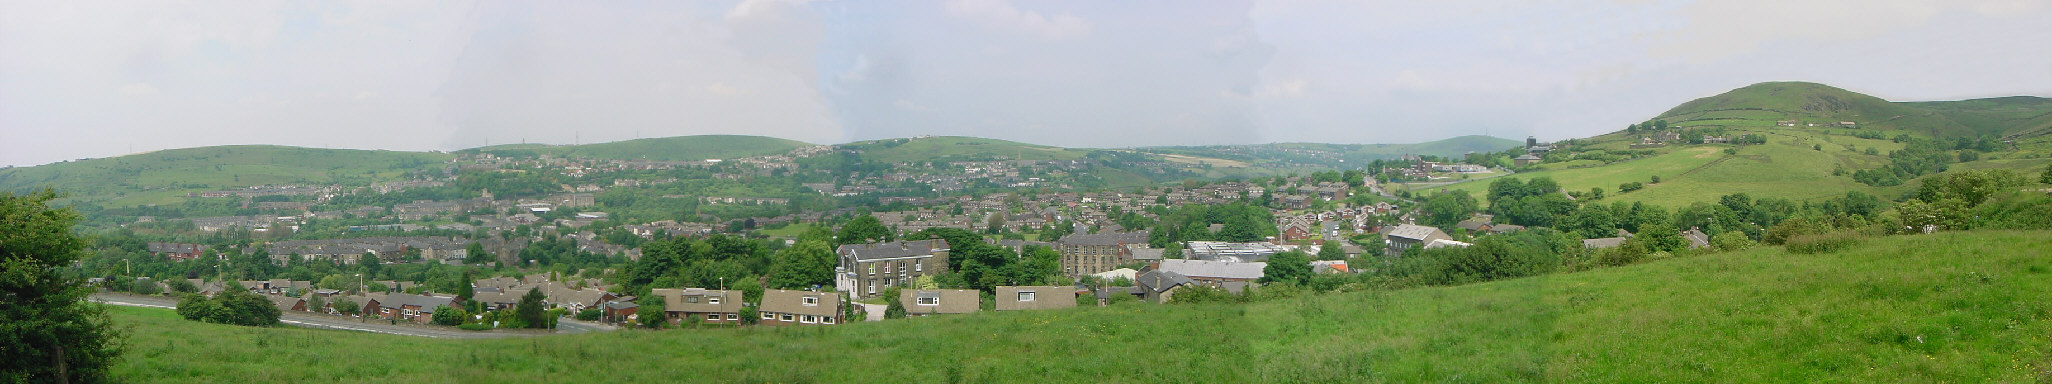 Panoramic Photo of Mossley